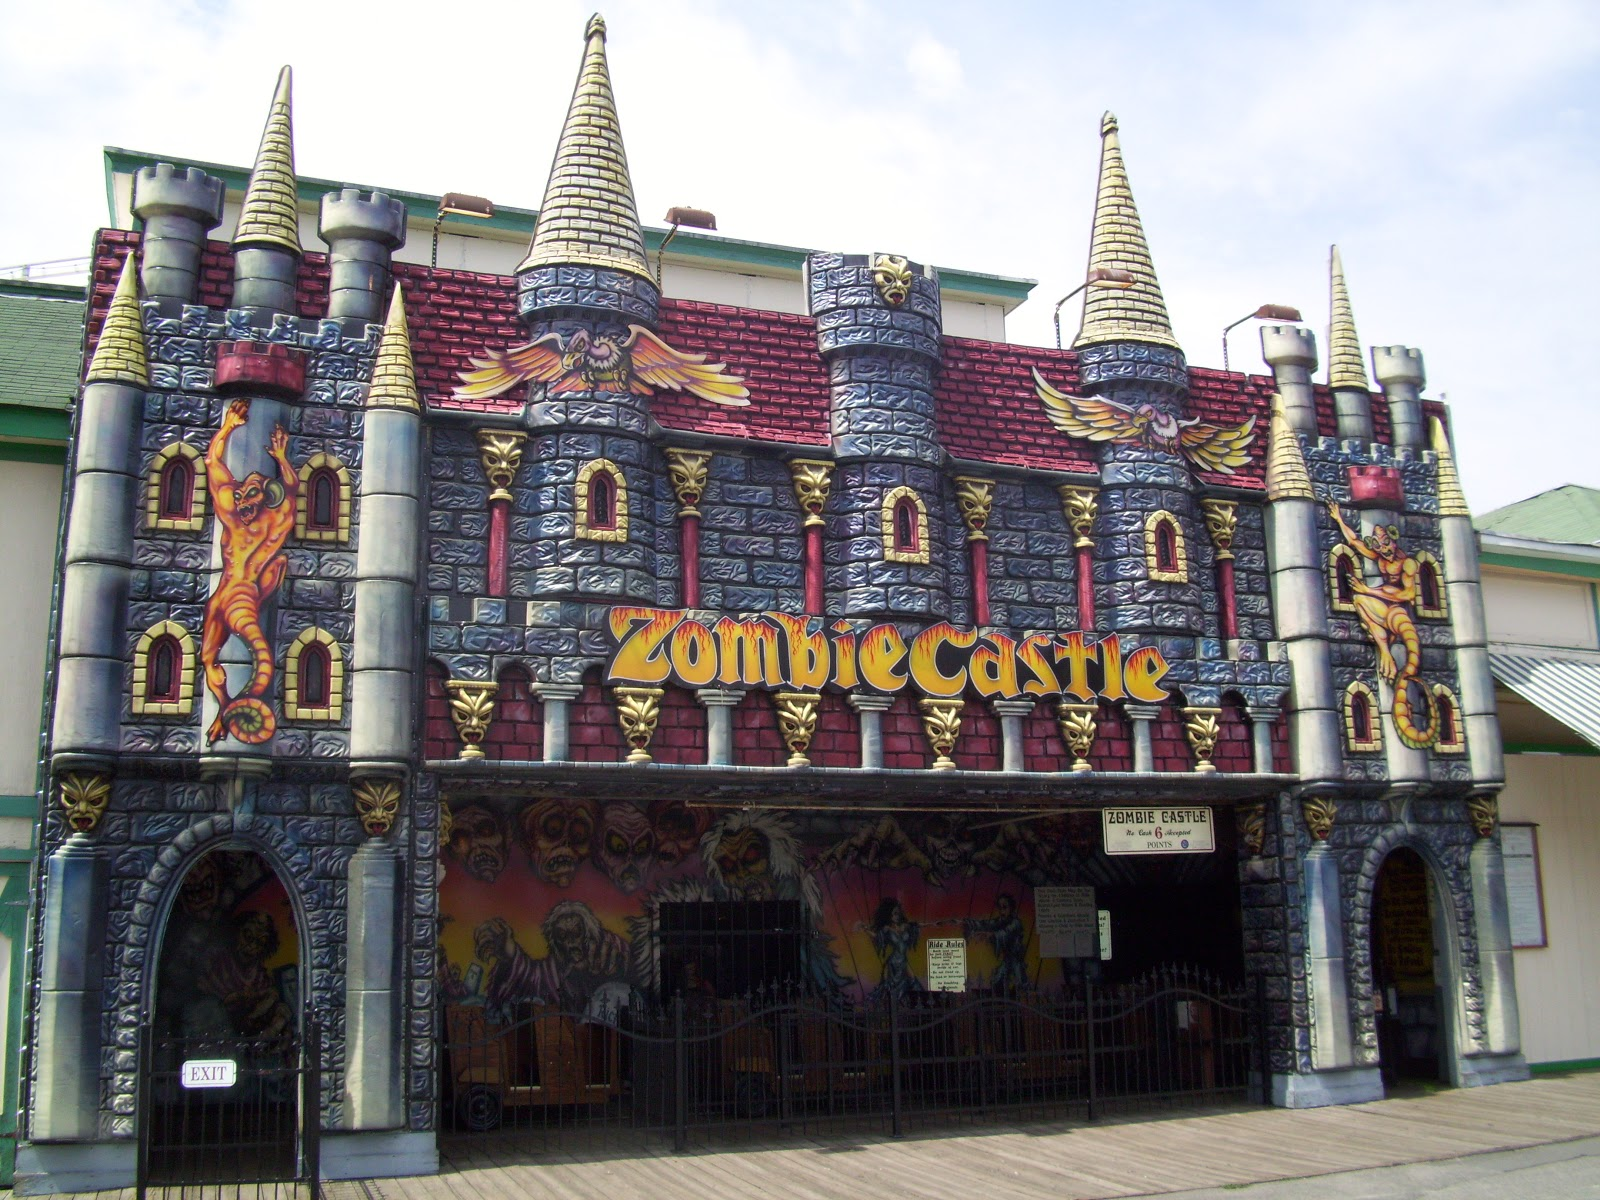 Haunted house pictures at amusement park